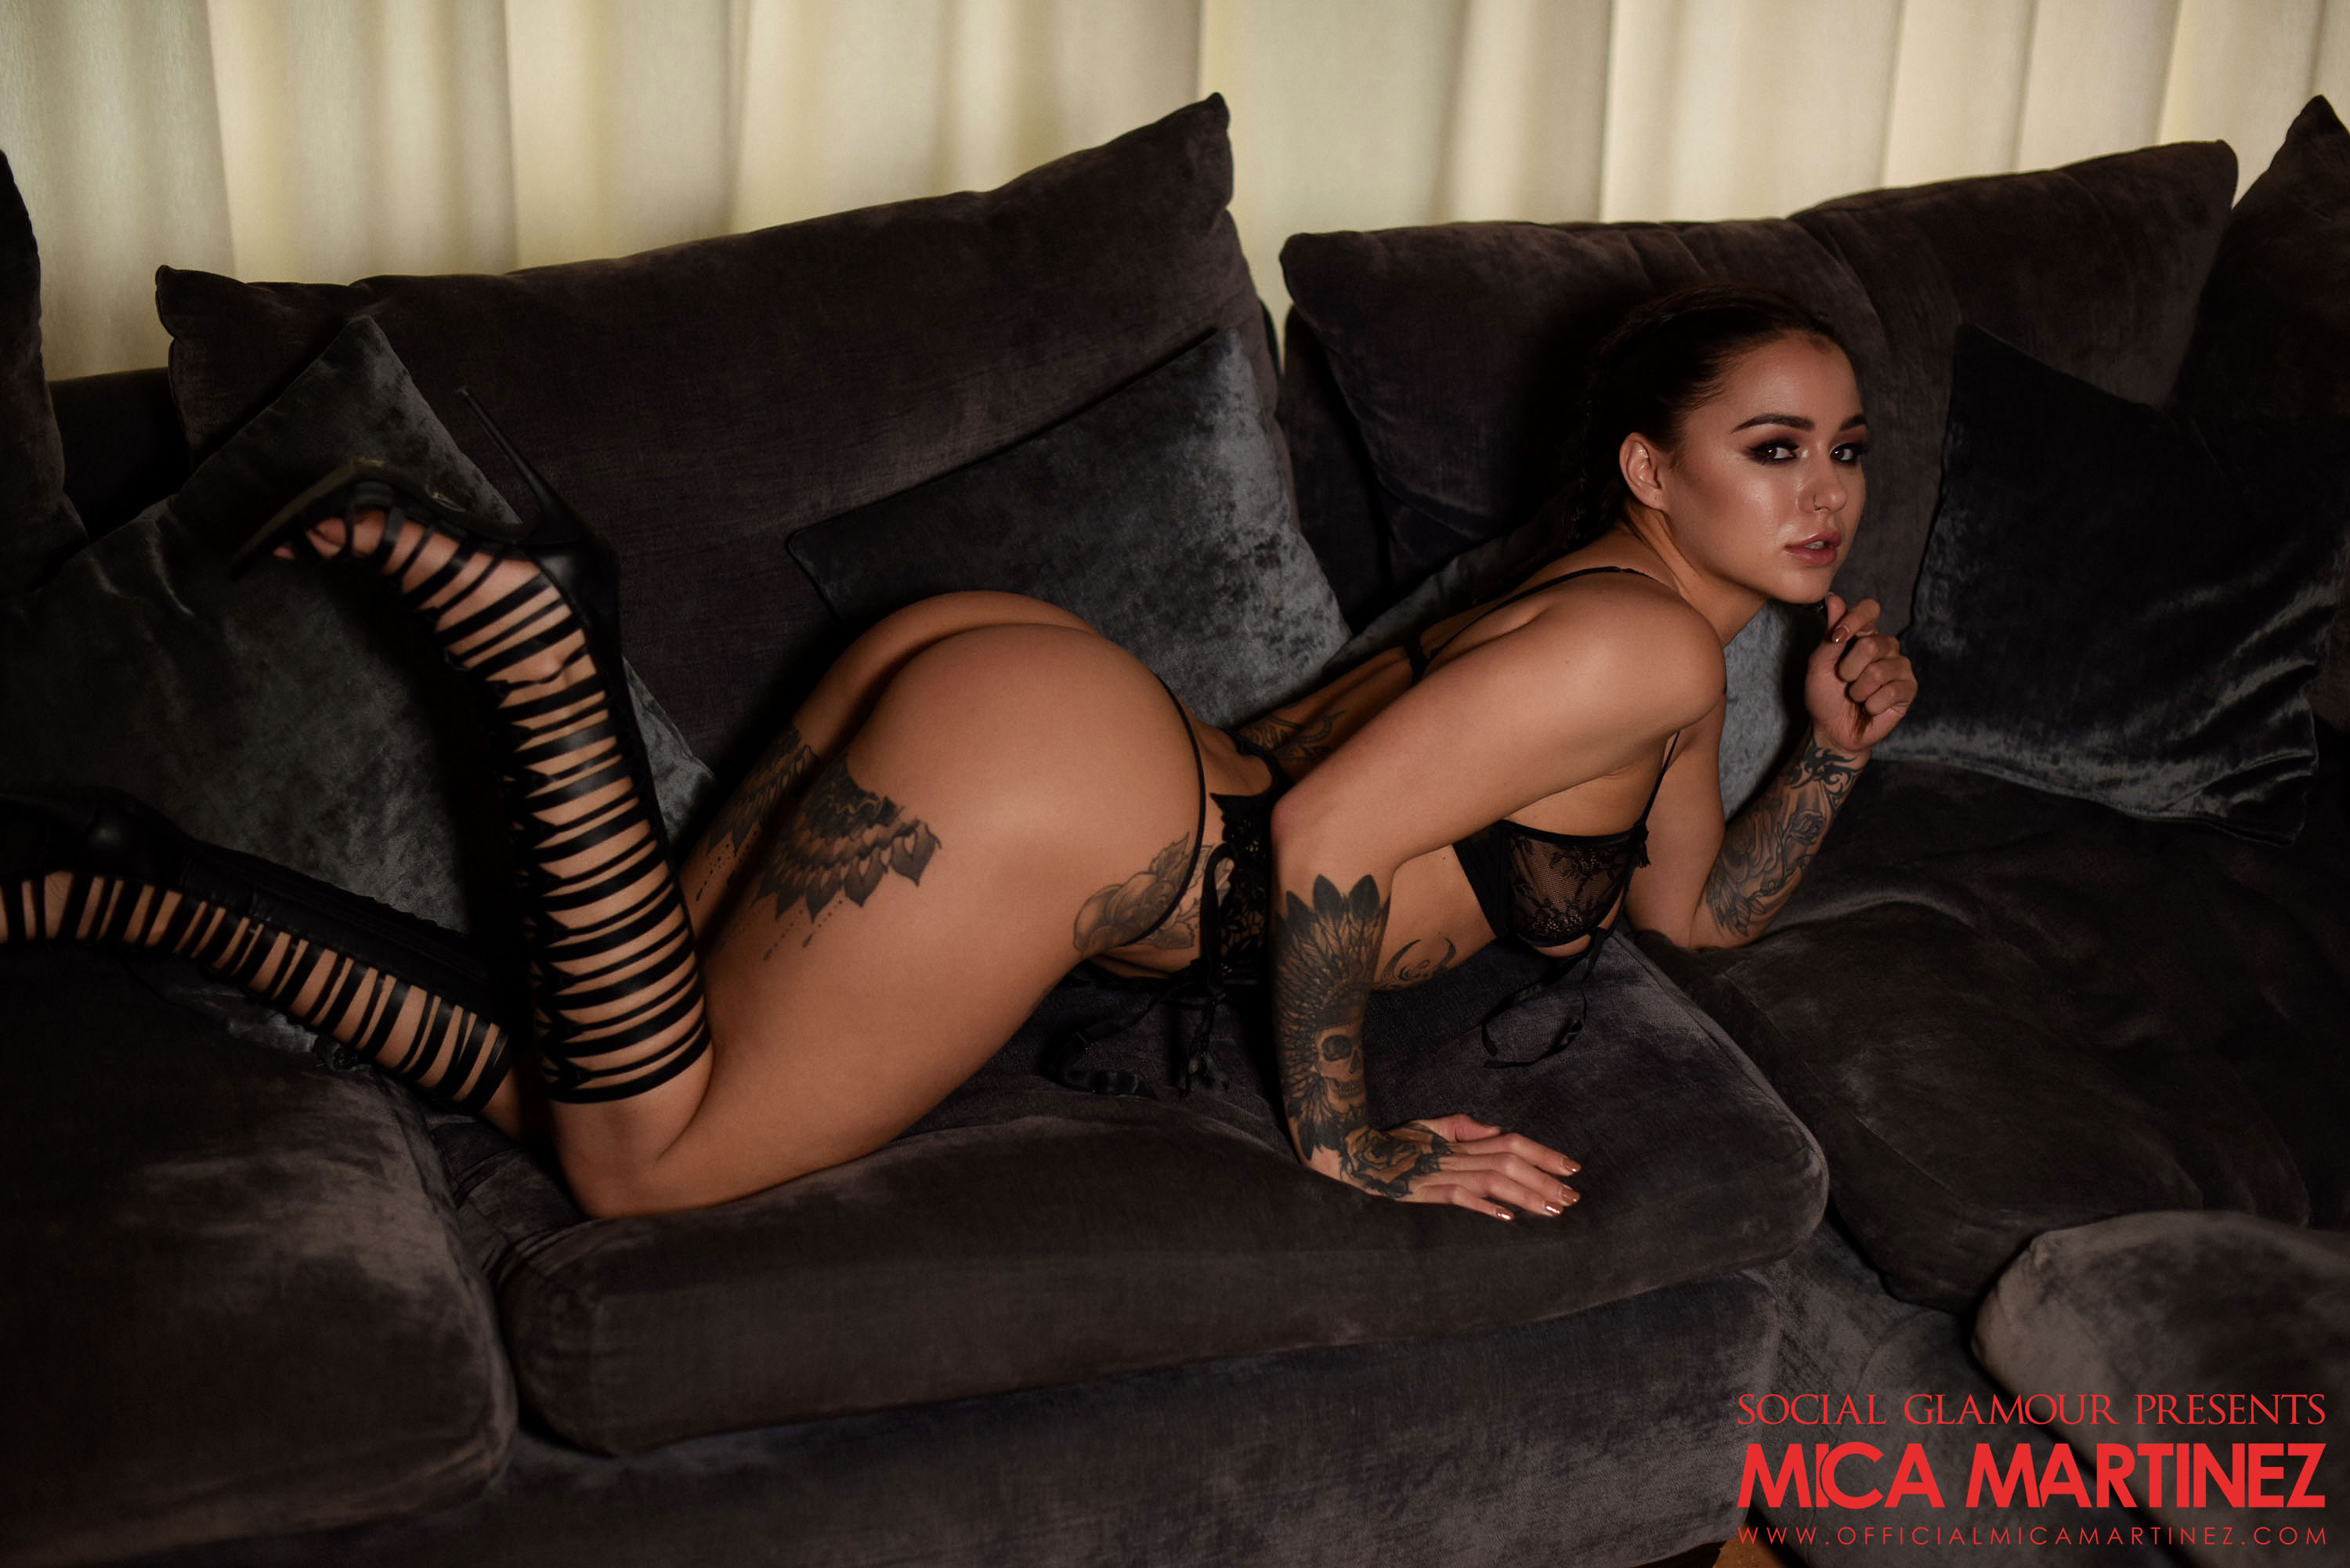 Tattooed vixen in sexy black lace lingerie